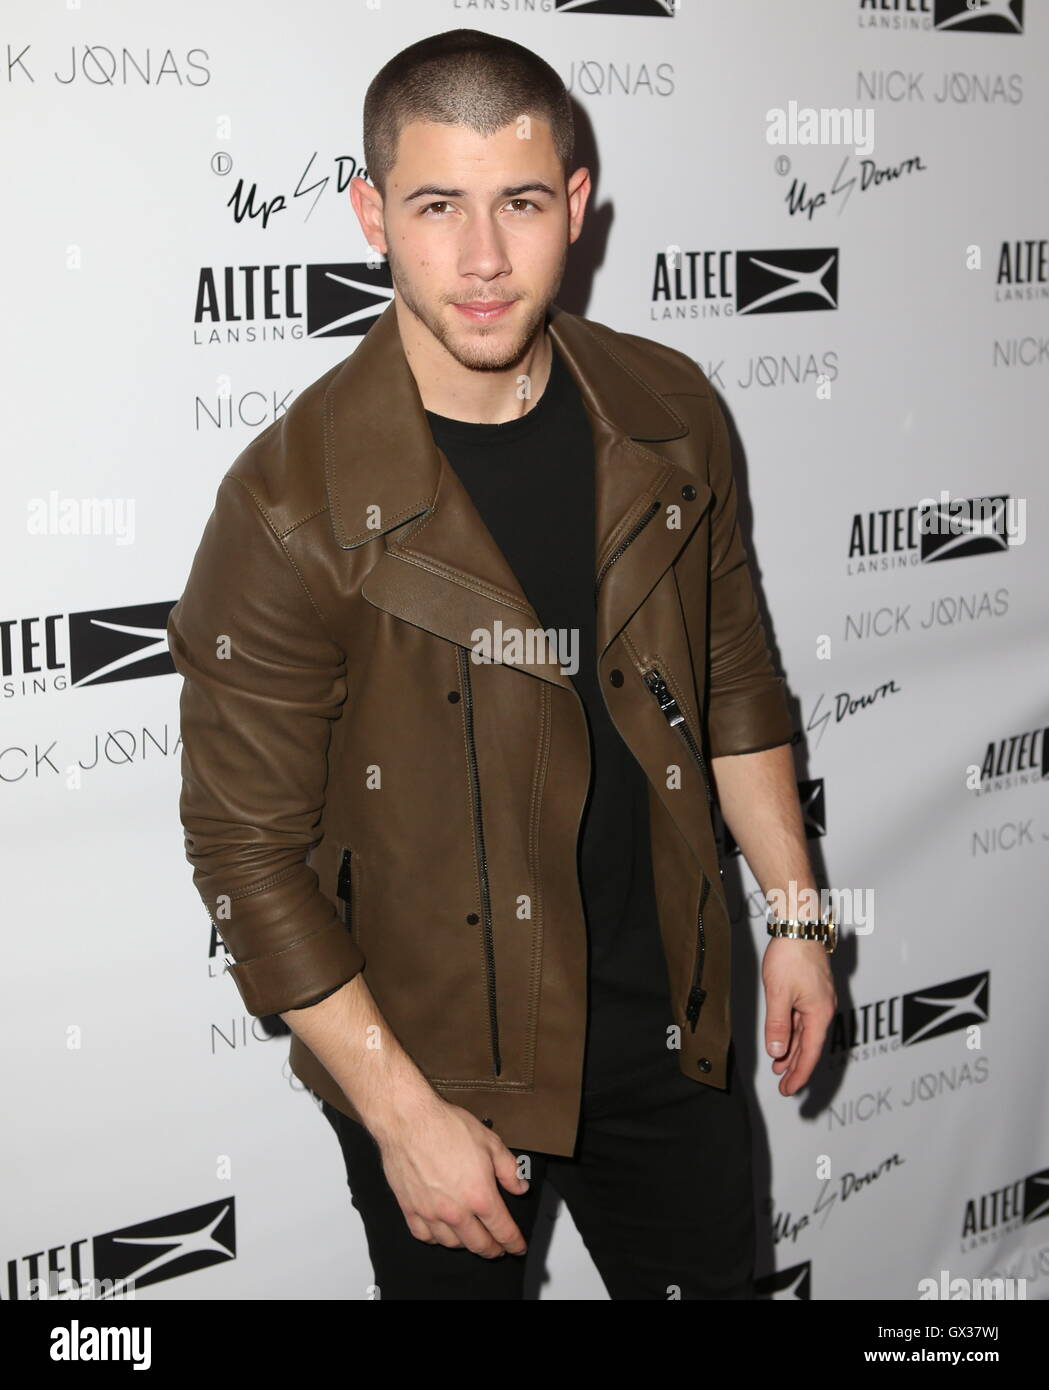 Altec Lansing x Nick Jonas collaboration launch at Up&Down